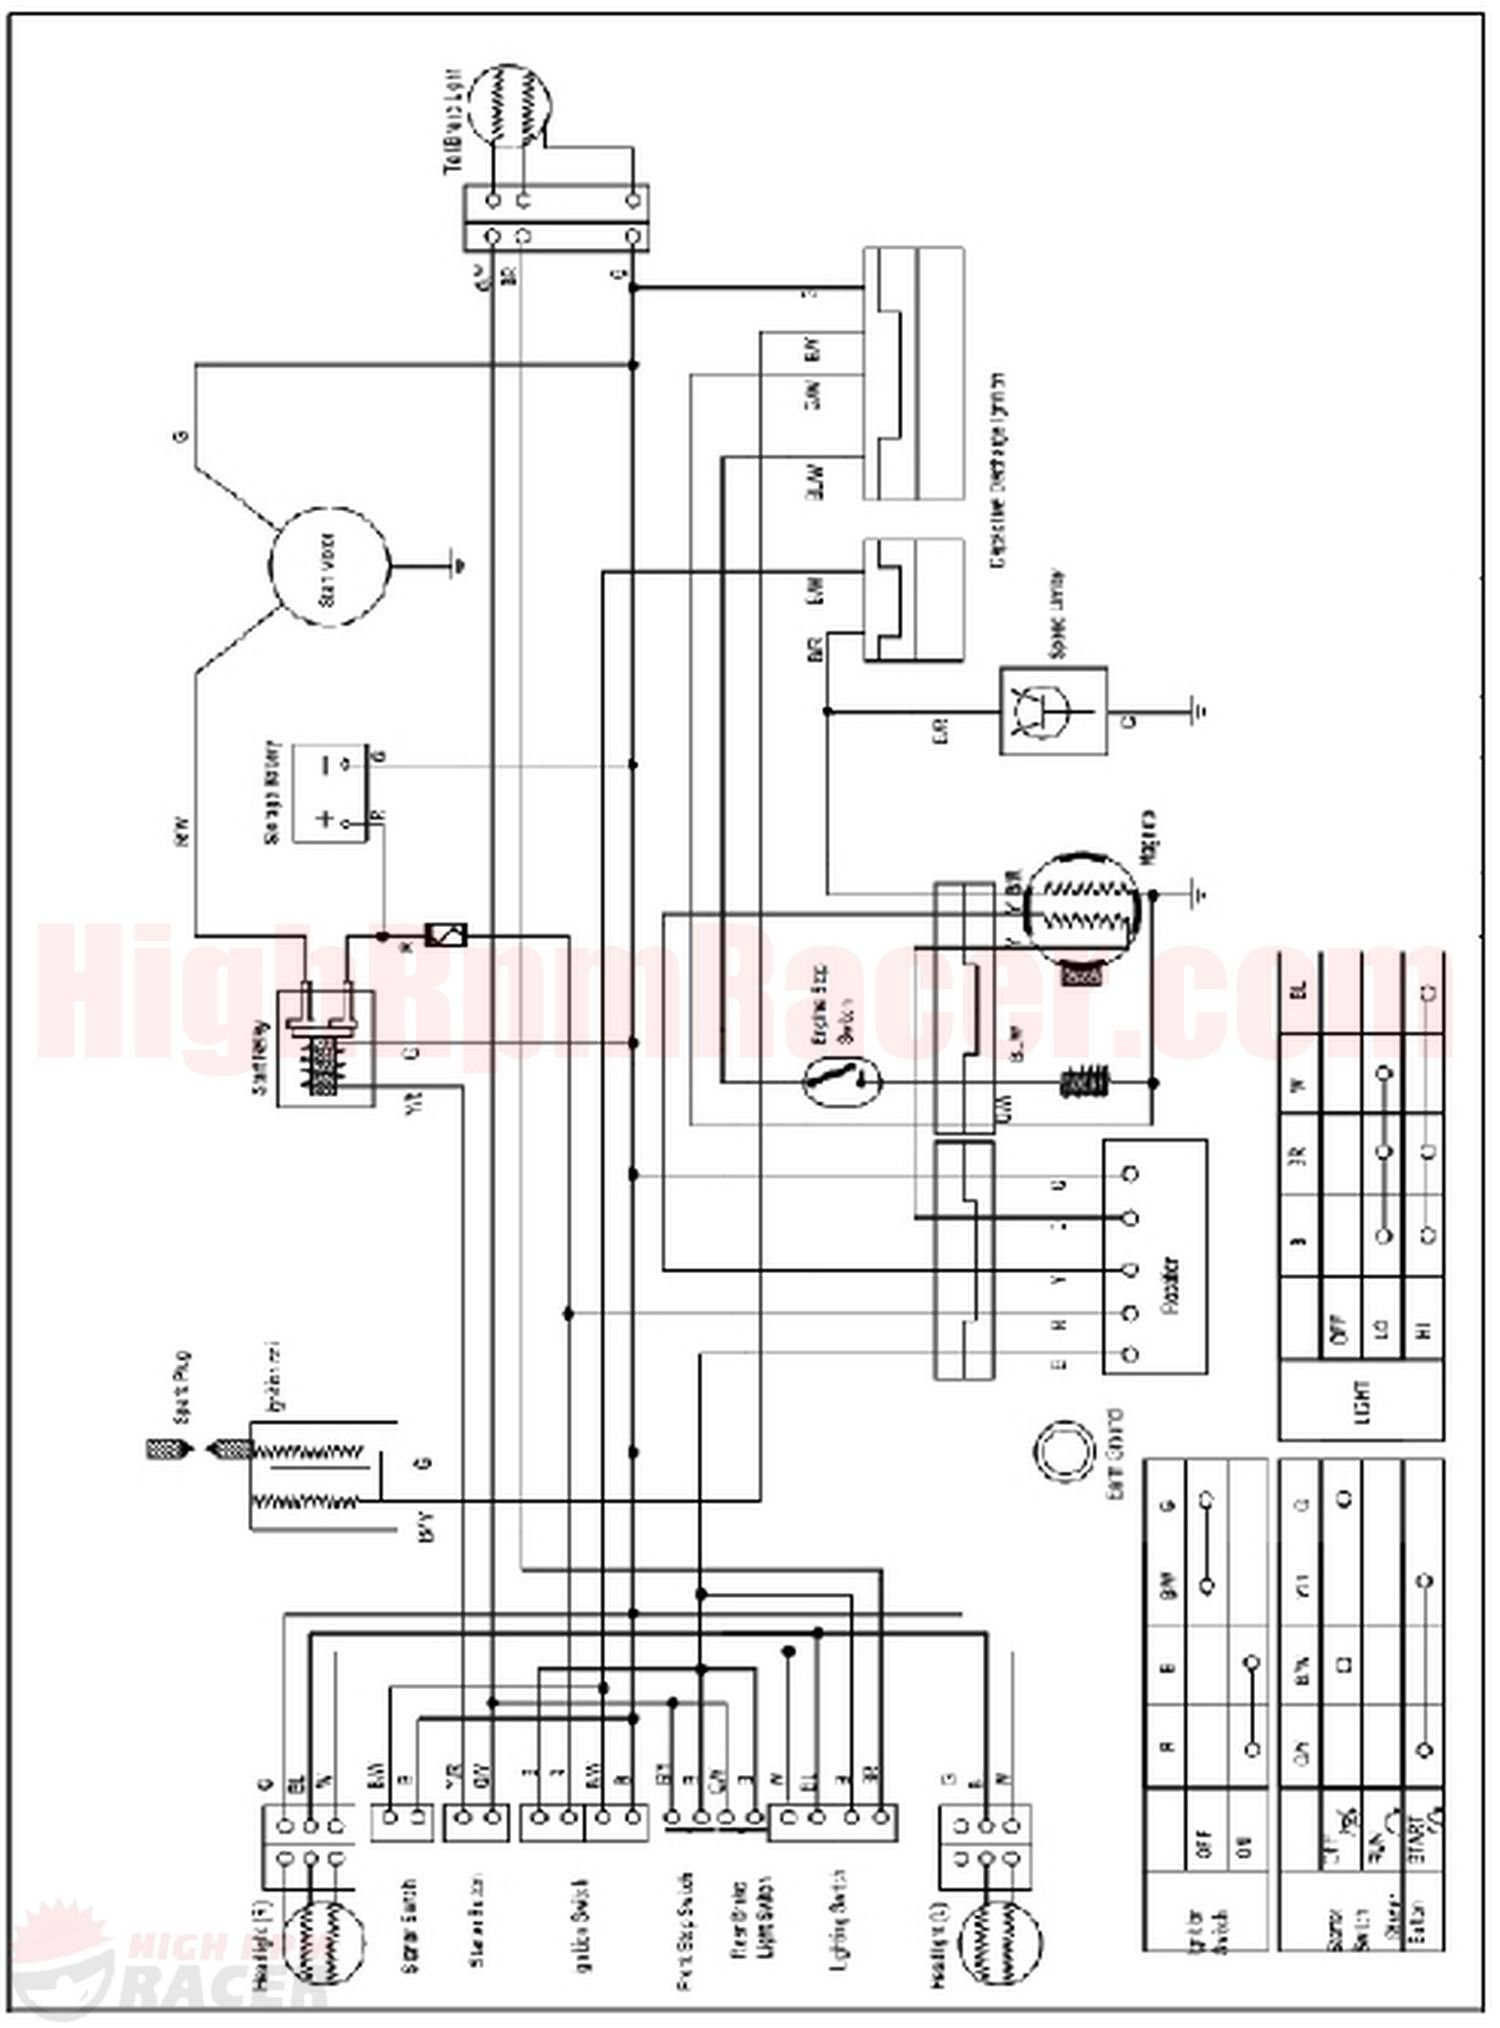 sunl250_wd sunl atv 250 wiring diagram $0 00 roketa 50cc atv wiring diagram at webbmarketing.co